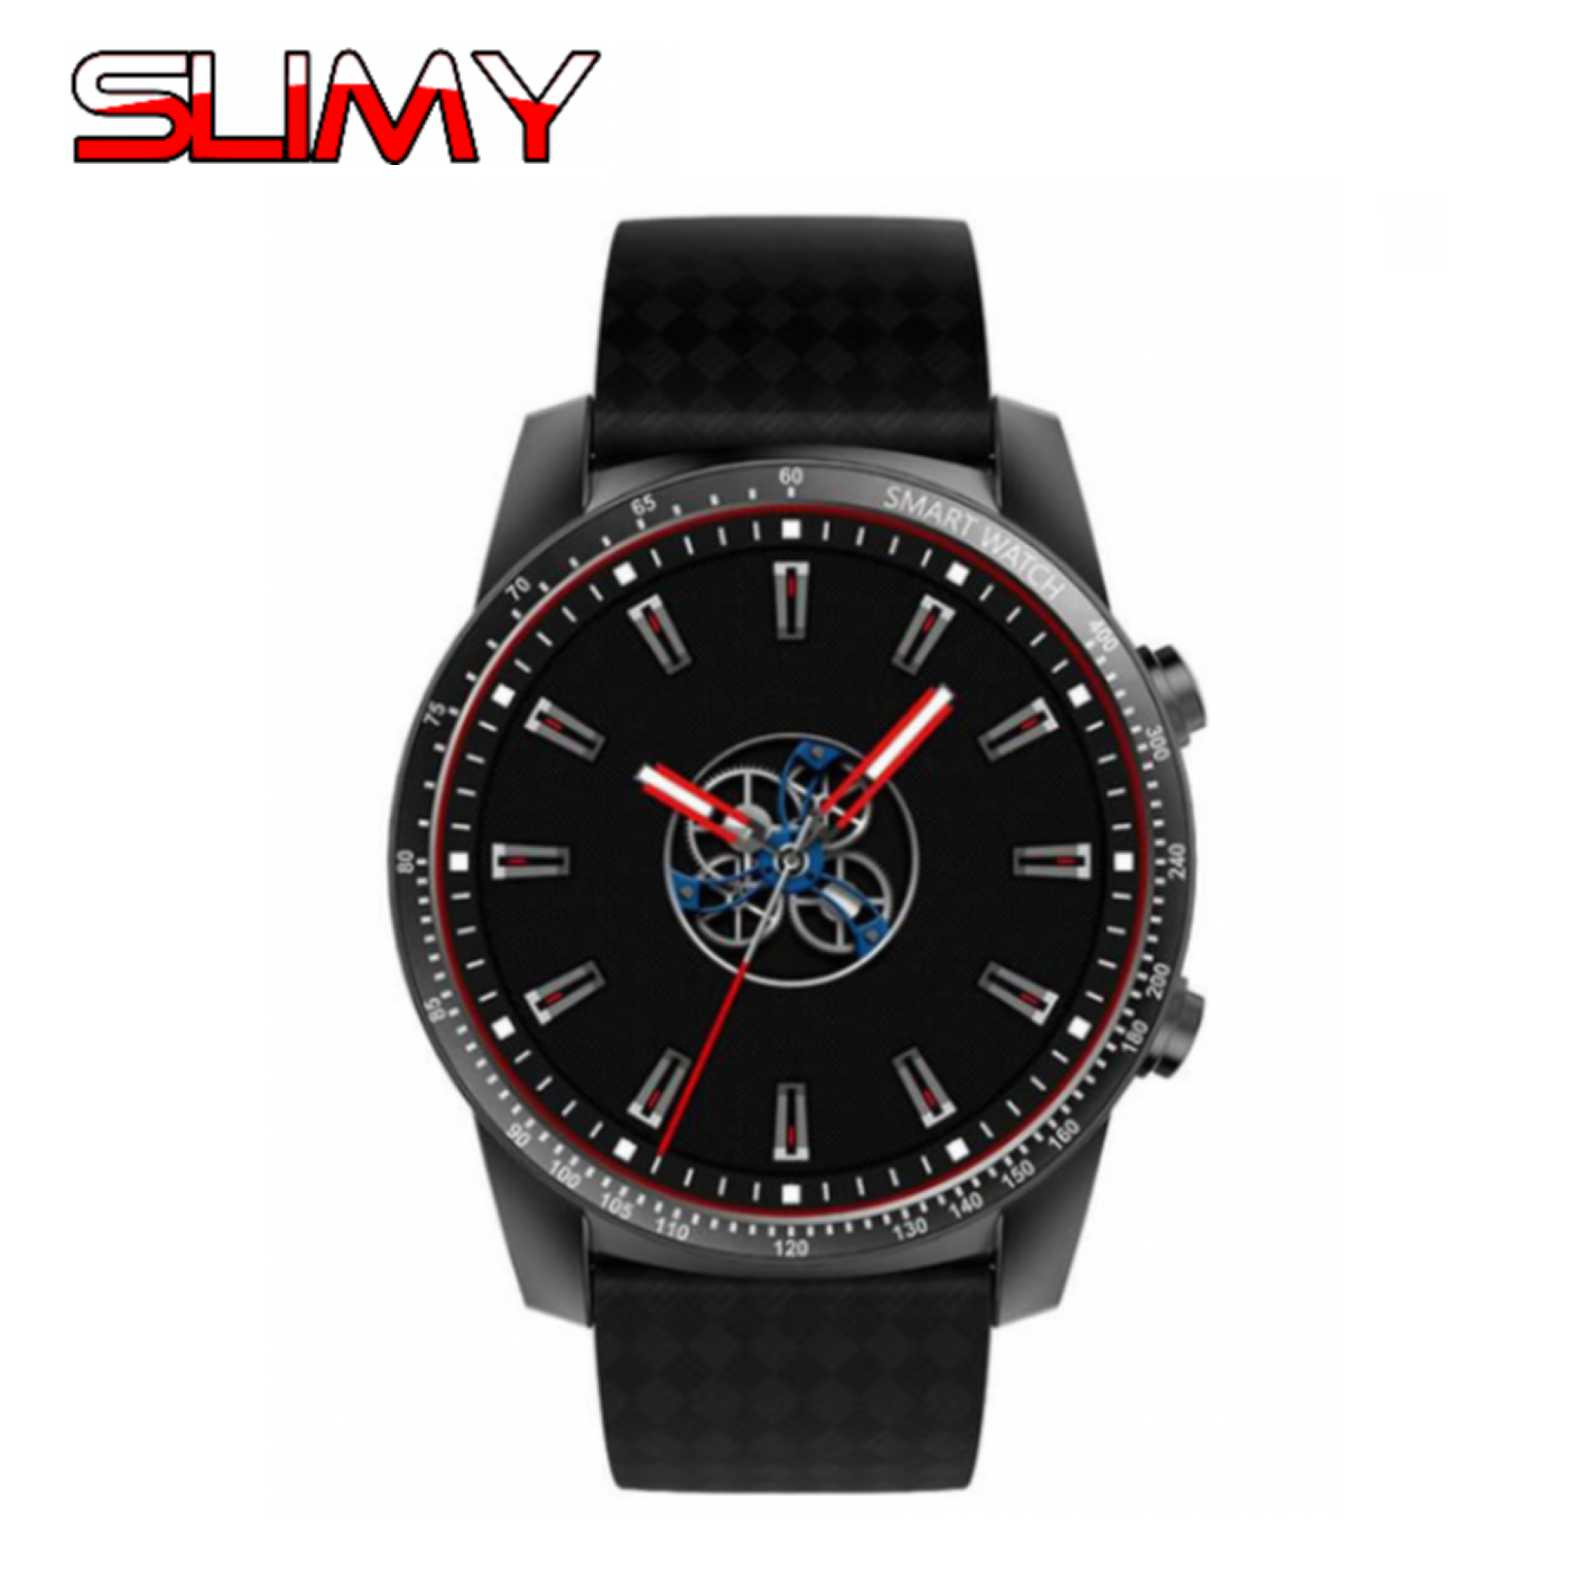 Slimy KW99 3G Smartwatch Phone Android 5.1 1.39'' MTK6580 Quad Core 8GB Heart Rate Monitor Pedometer Smart Watch For Men Women smart watch smartwatch dm368 1 39 amoled display quad core bluetooth4 heart rate monitor wristwatch ios android phones pk k8